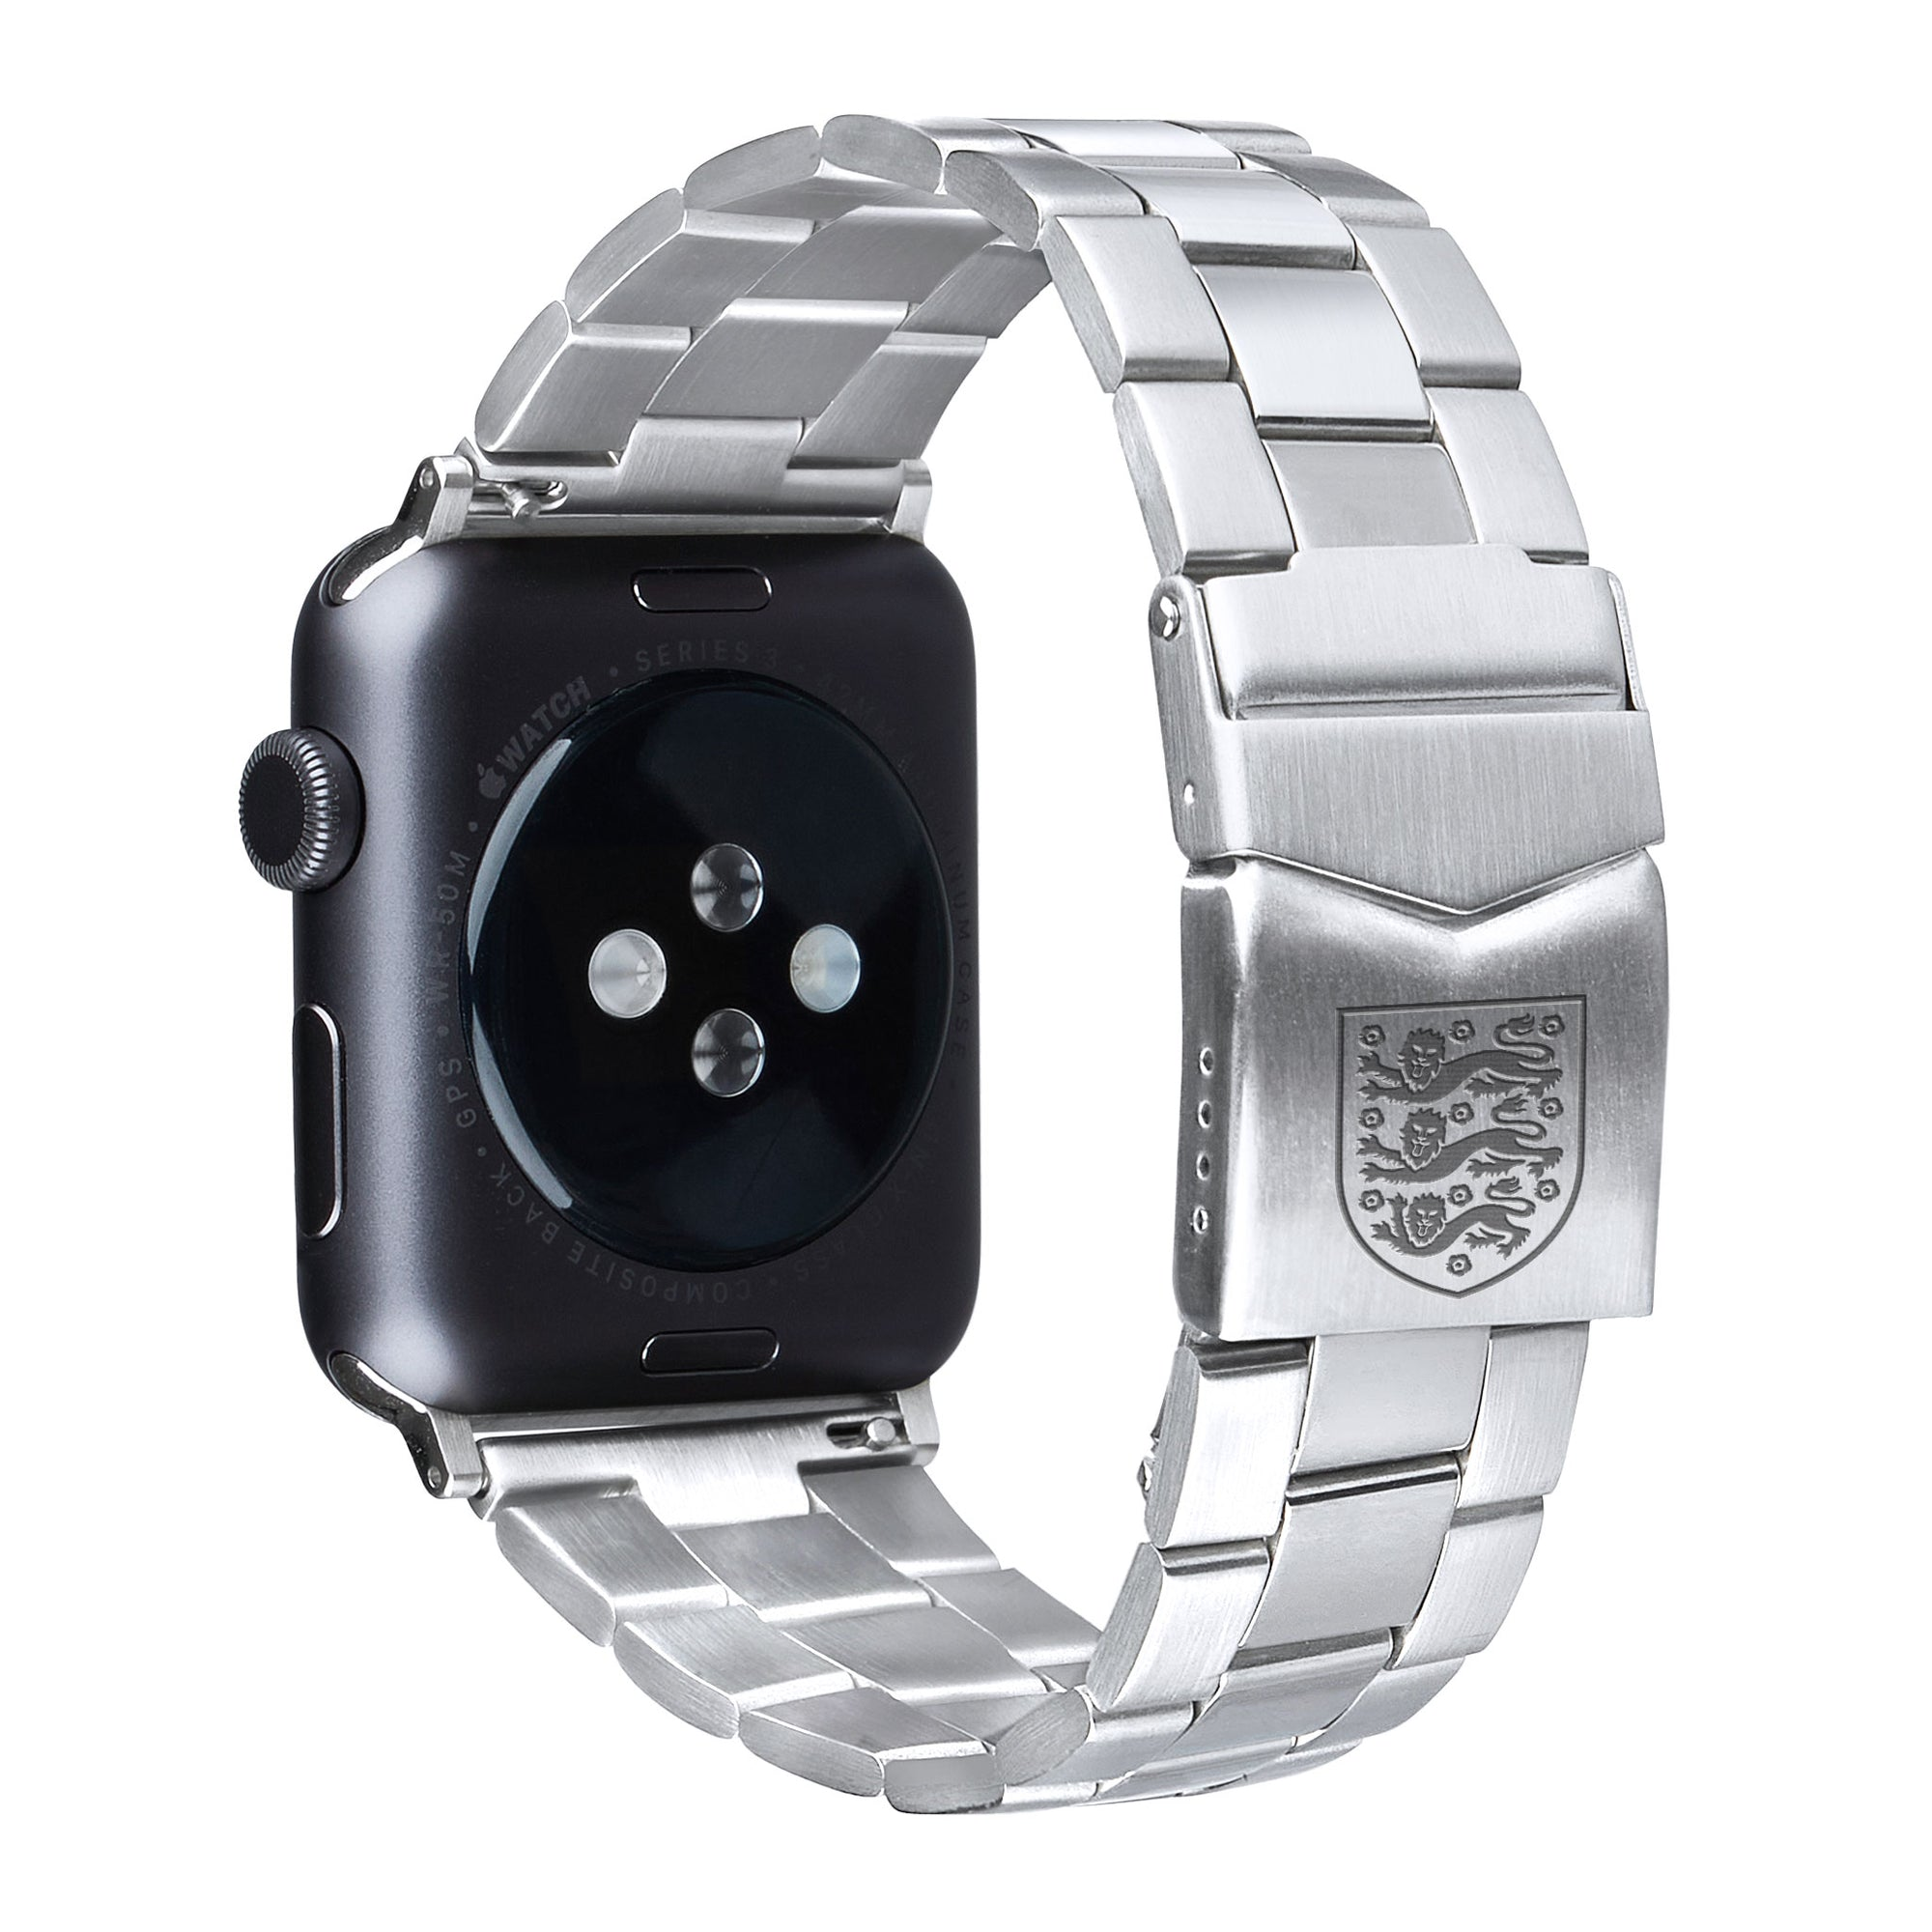 The FA Stainless Steel Link Style Apple Watch Band - Affinity Bands